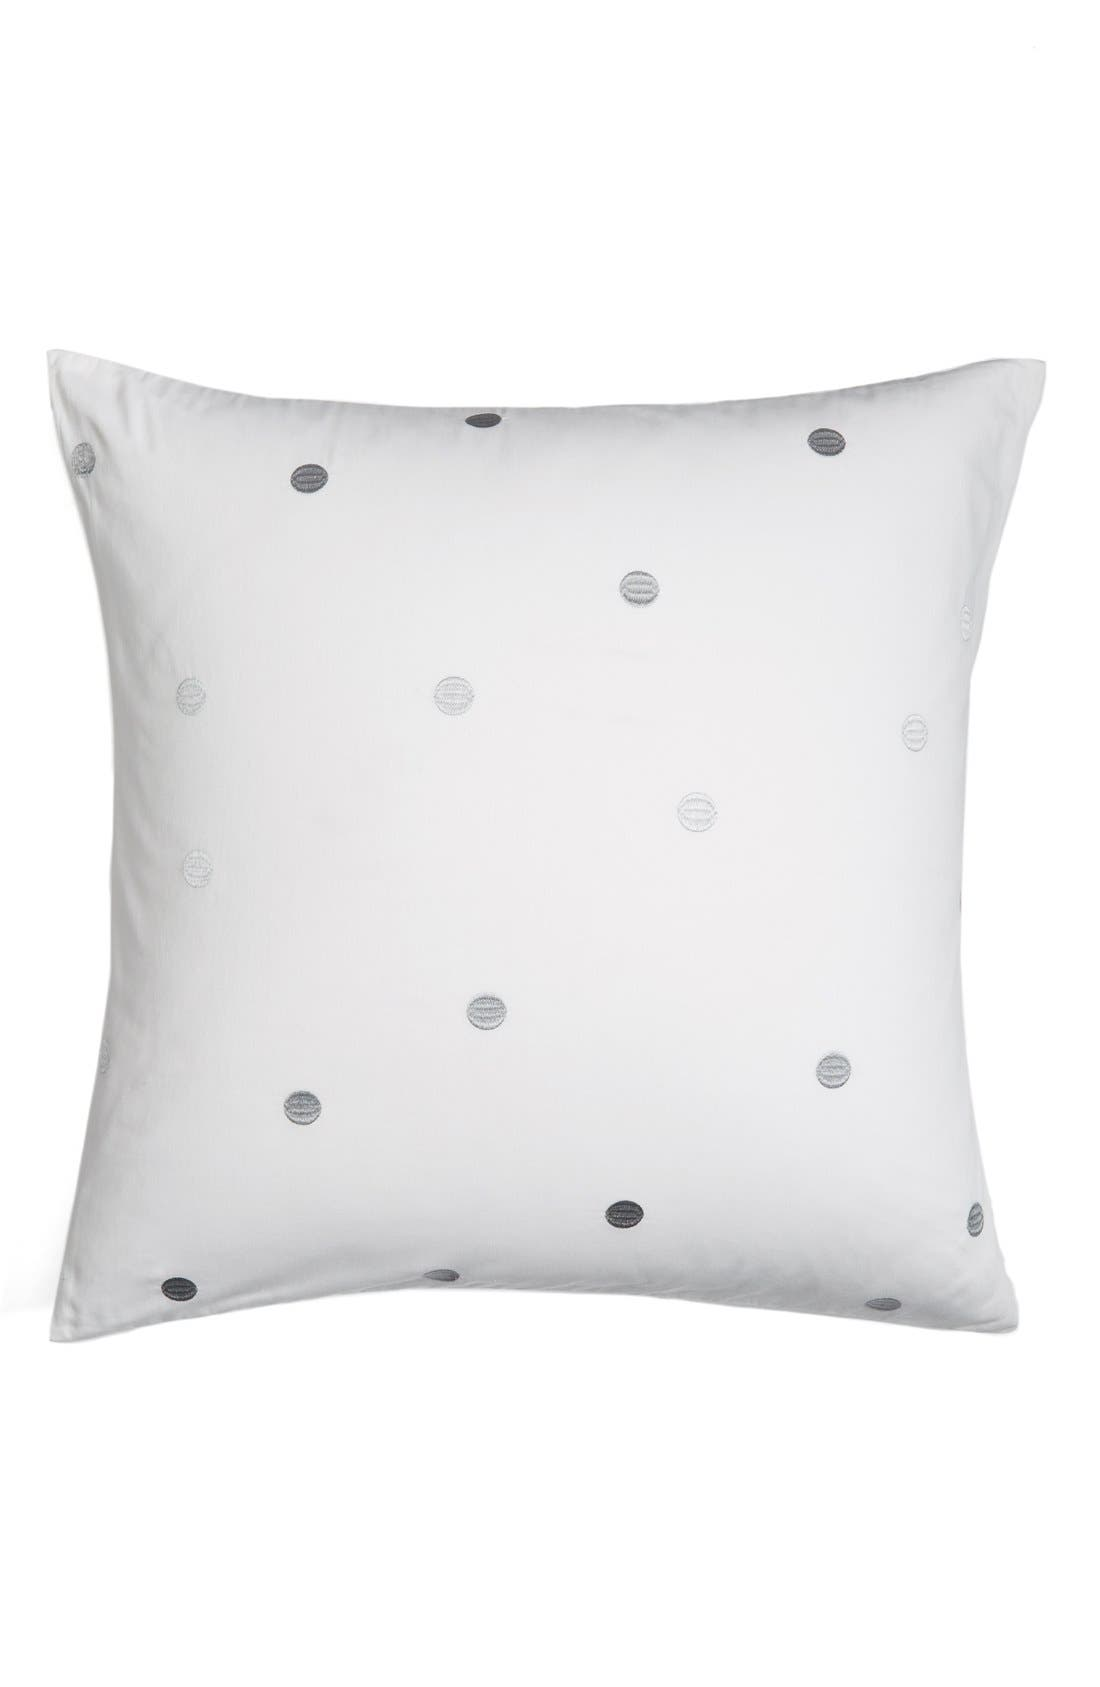 kate spade new york 'deco dot' euro sham